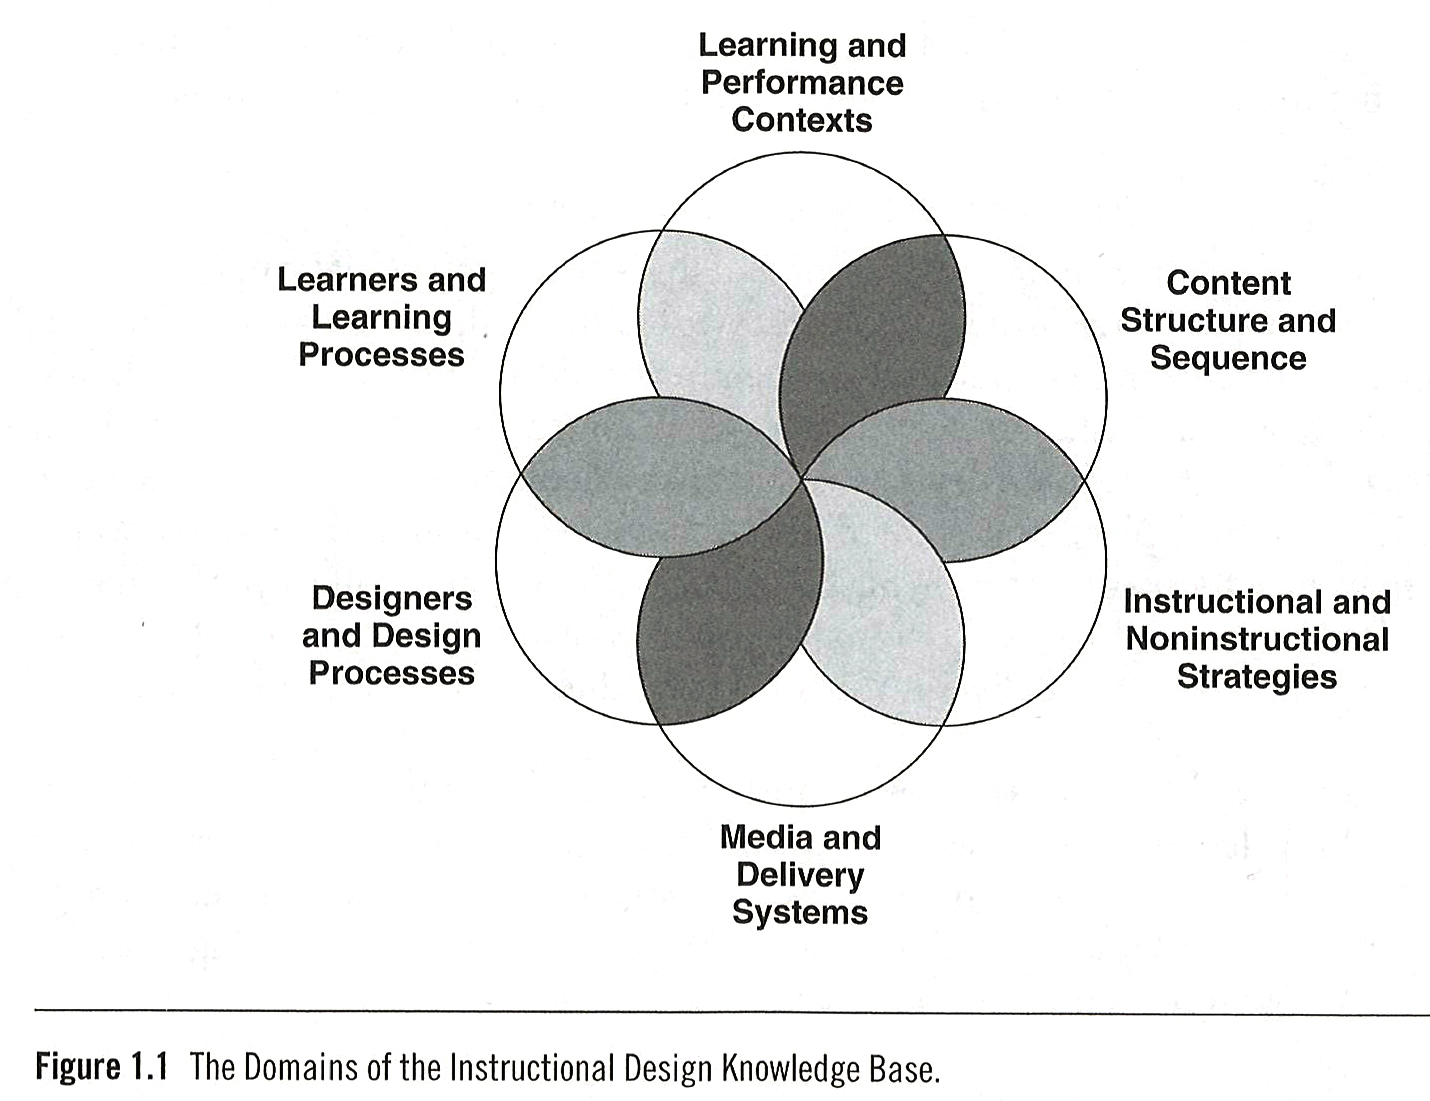 Domains of the instructional design knowledge base.